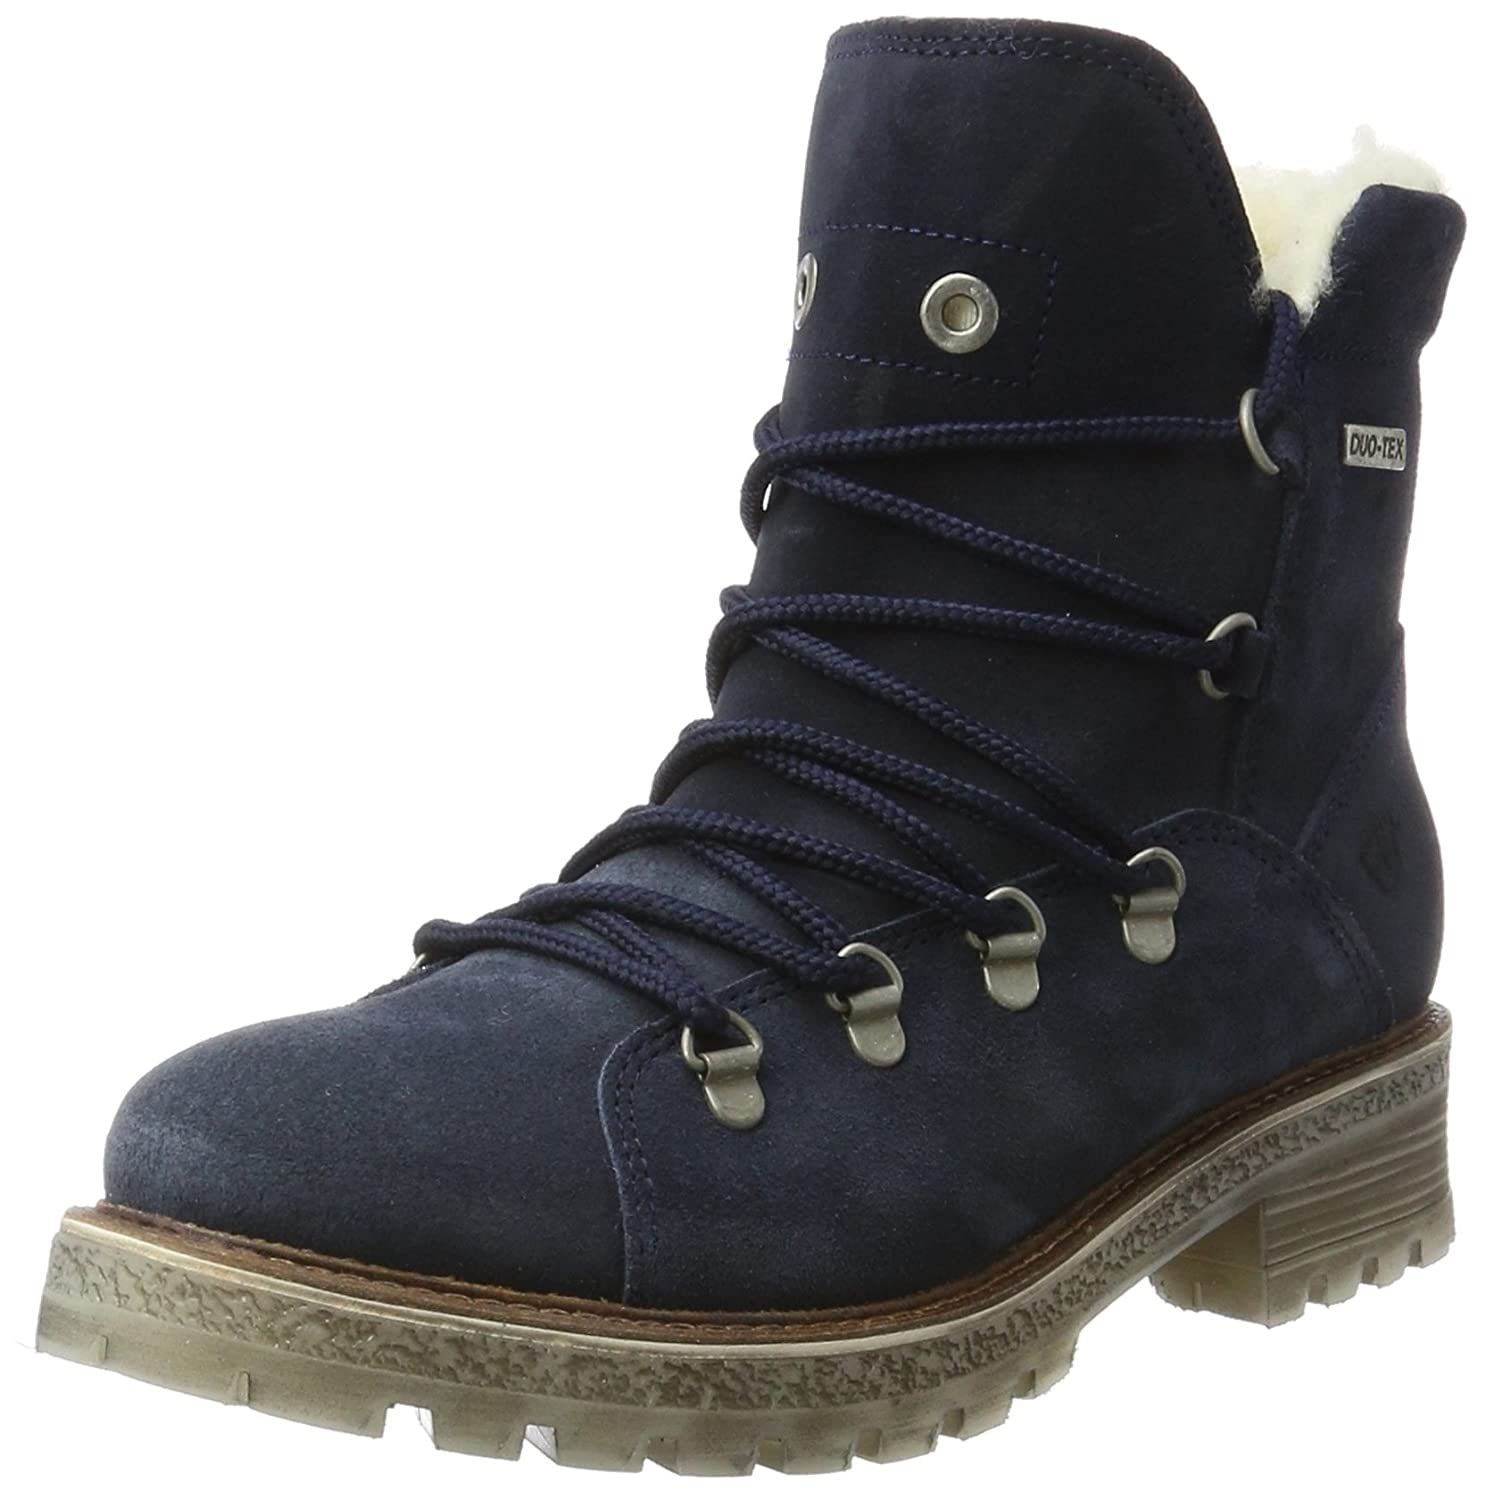 Tamaris 26973 Damen 26973 Tamaris Stiefel Blau (Night Blau) 7c08ca